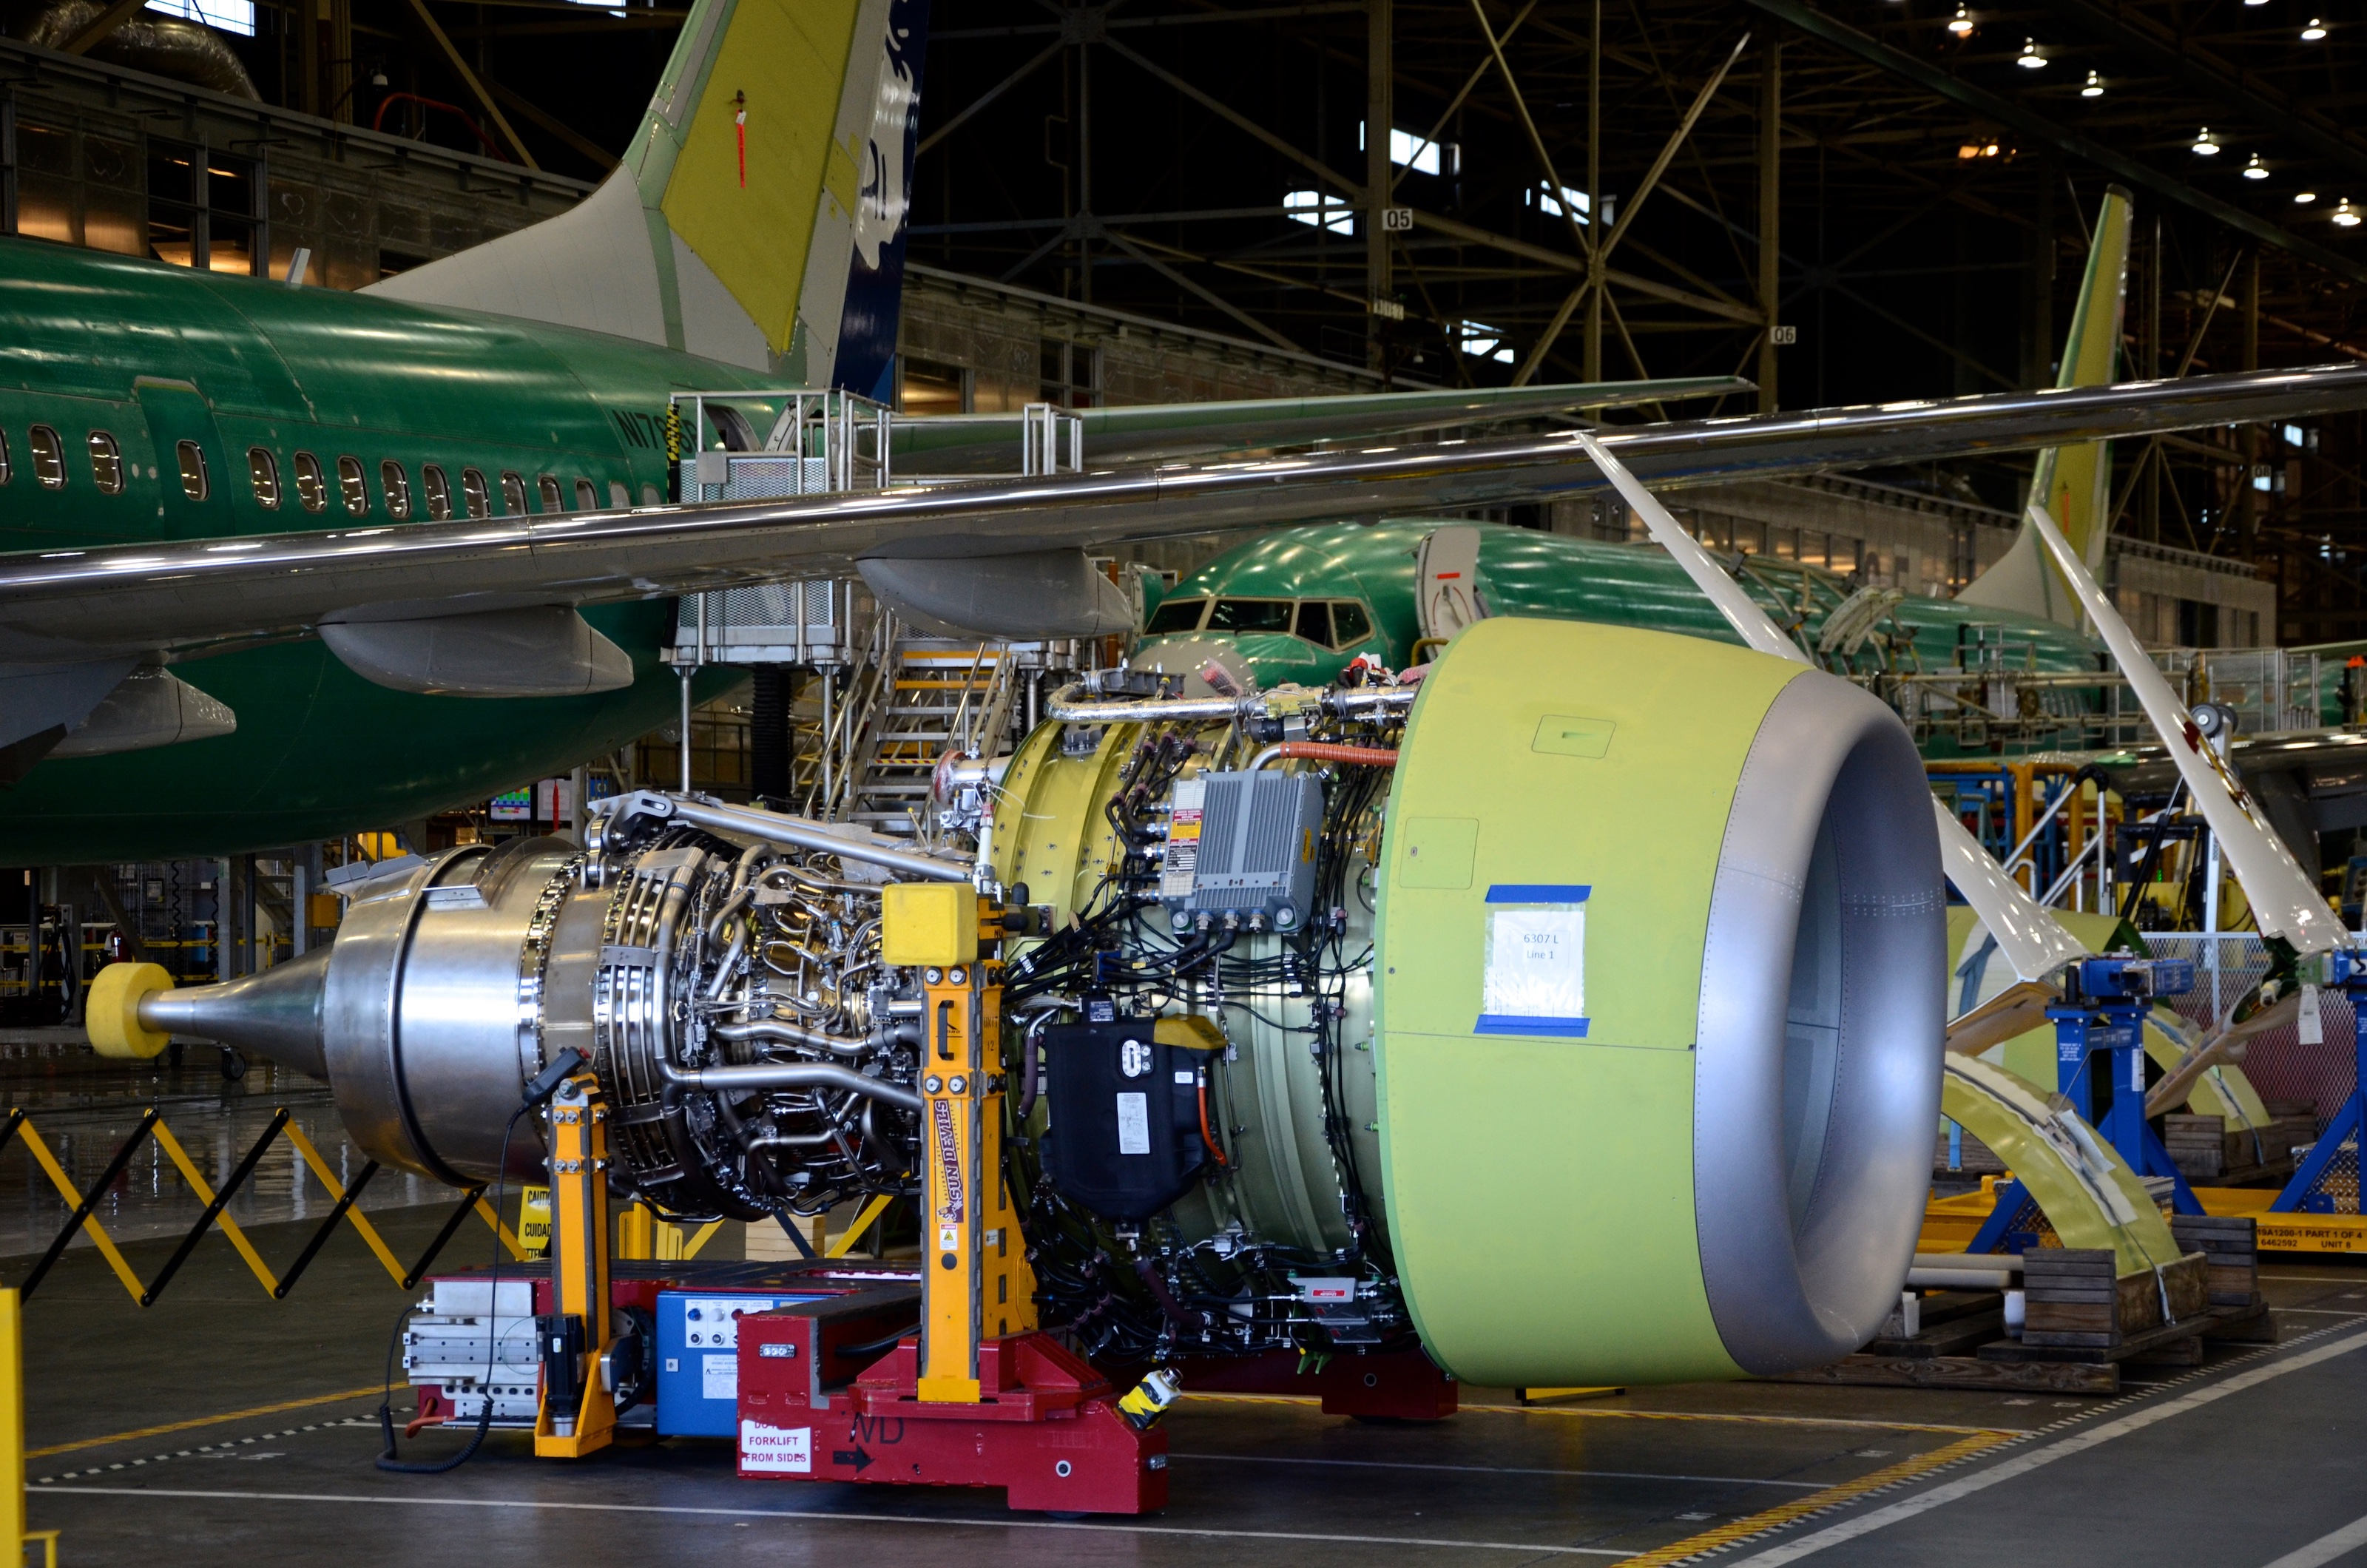 A CFM56-7B engine on Boeing's 737 final assembly line in Renton, Wash.